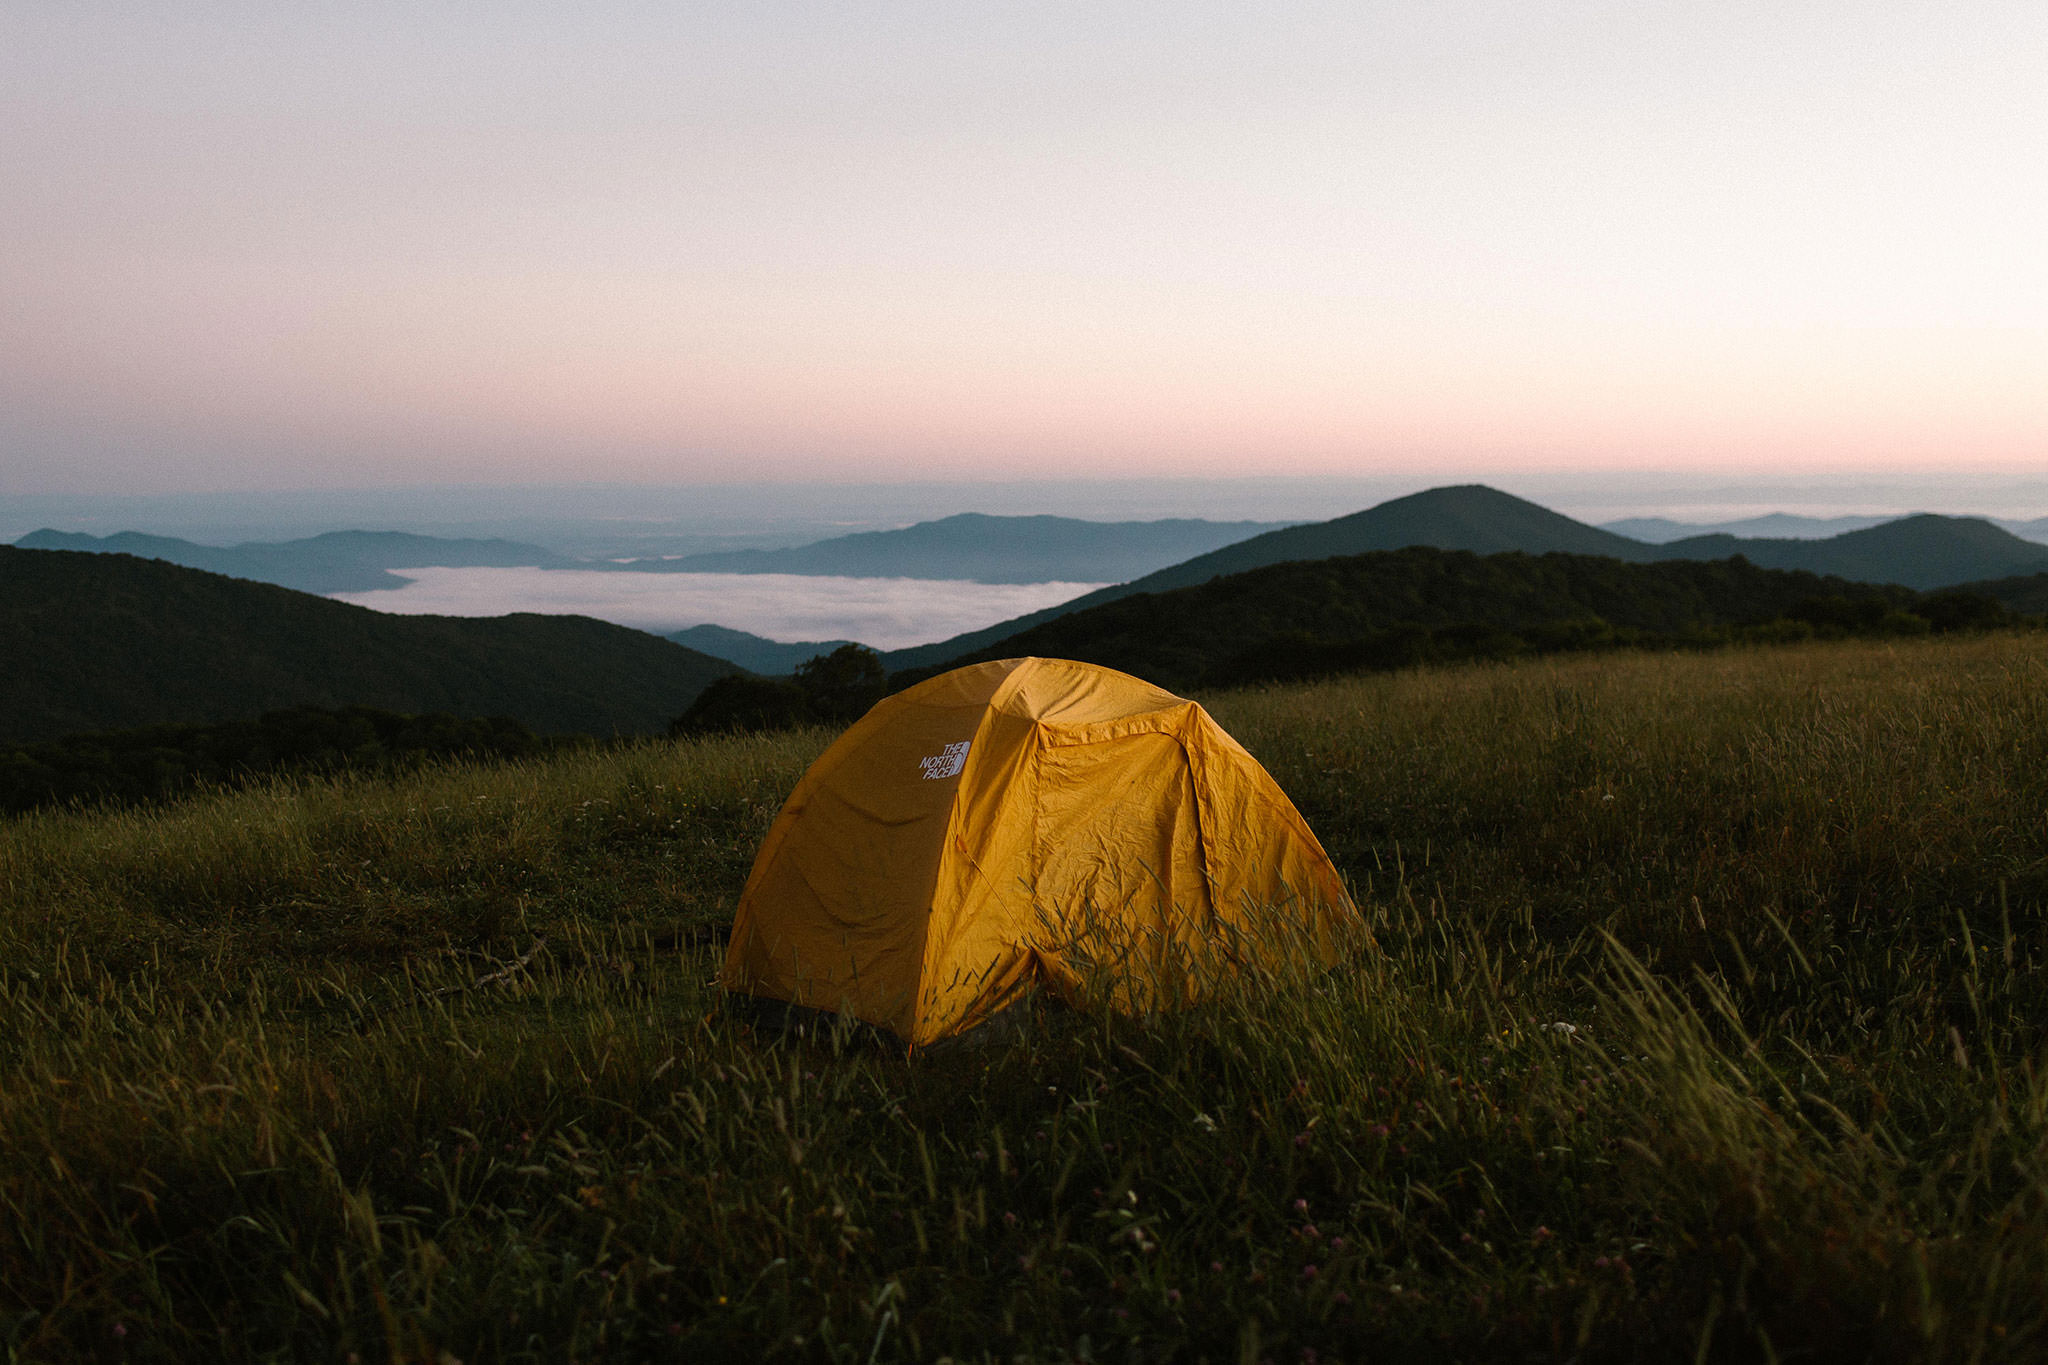 Just before sunrise on Max Patch mountain